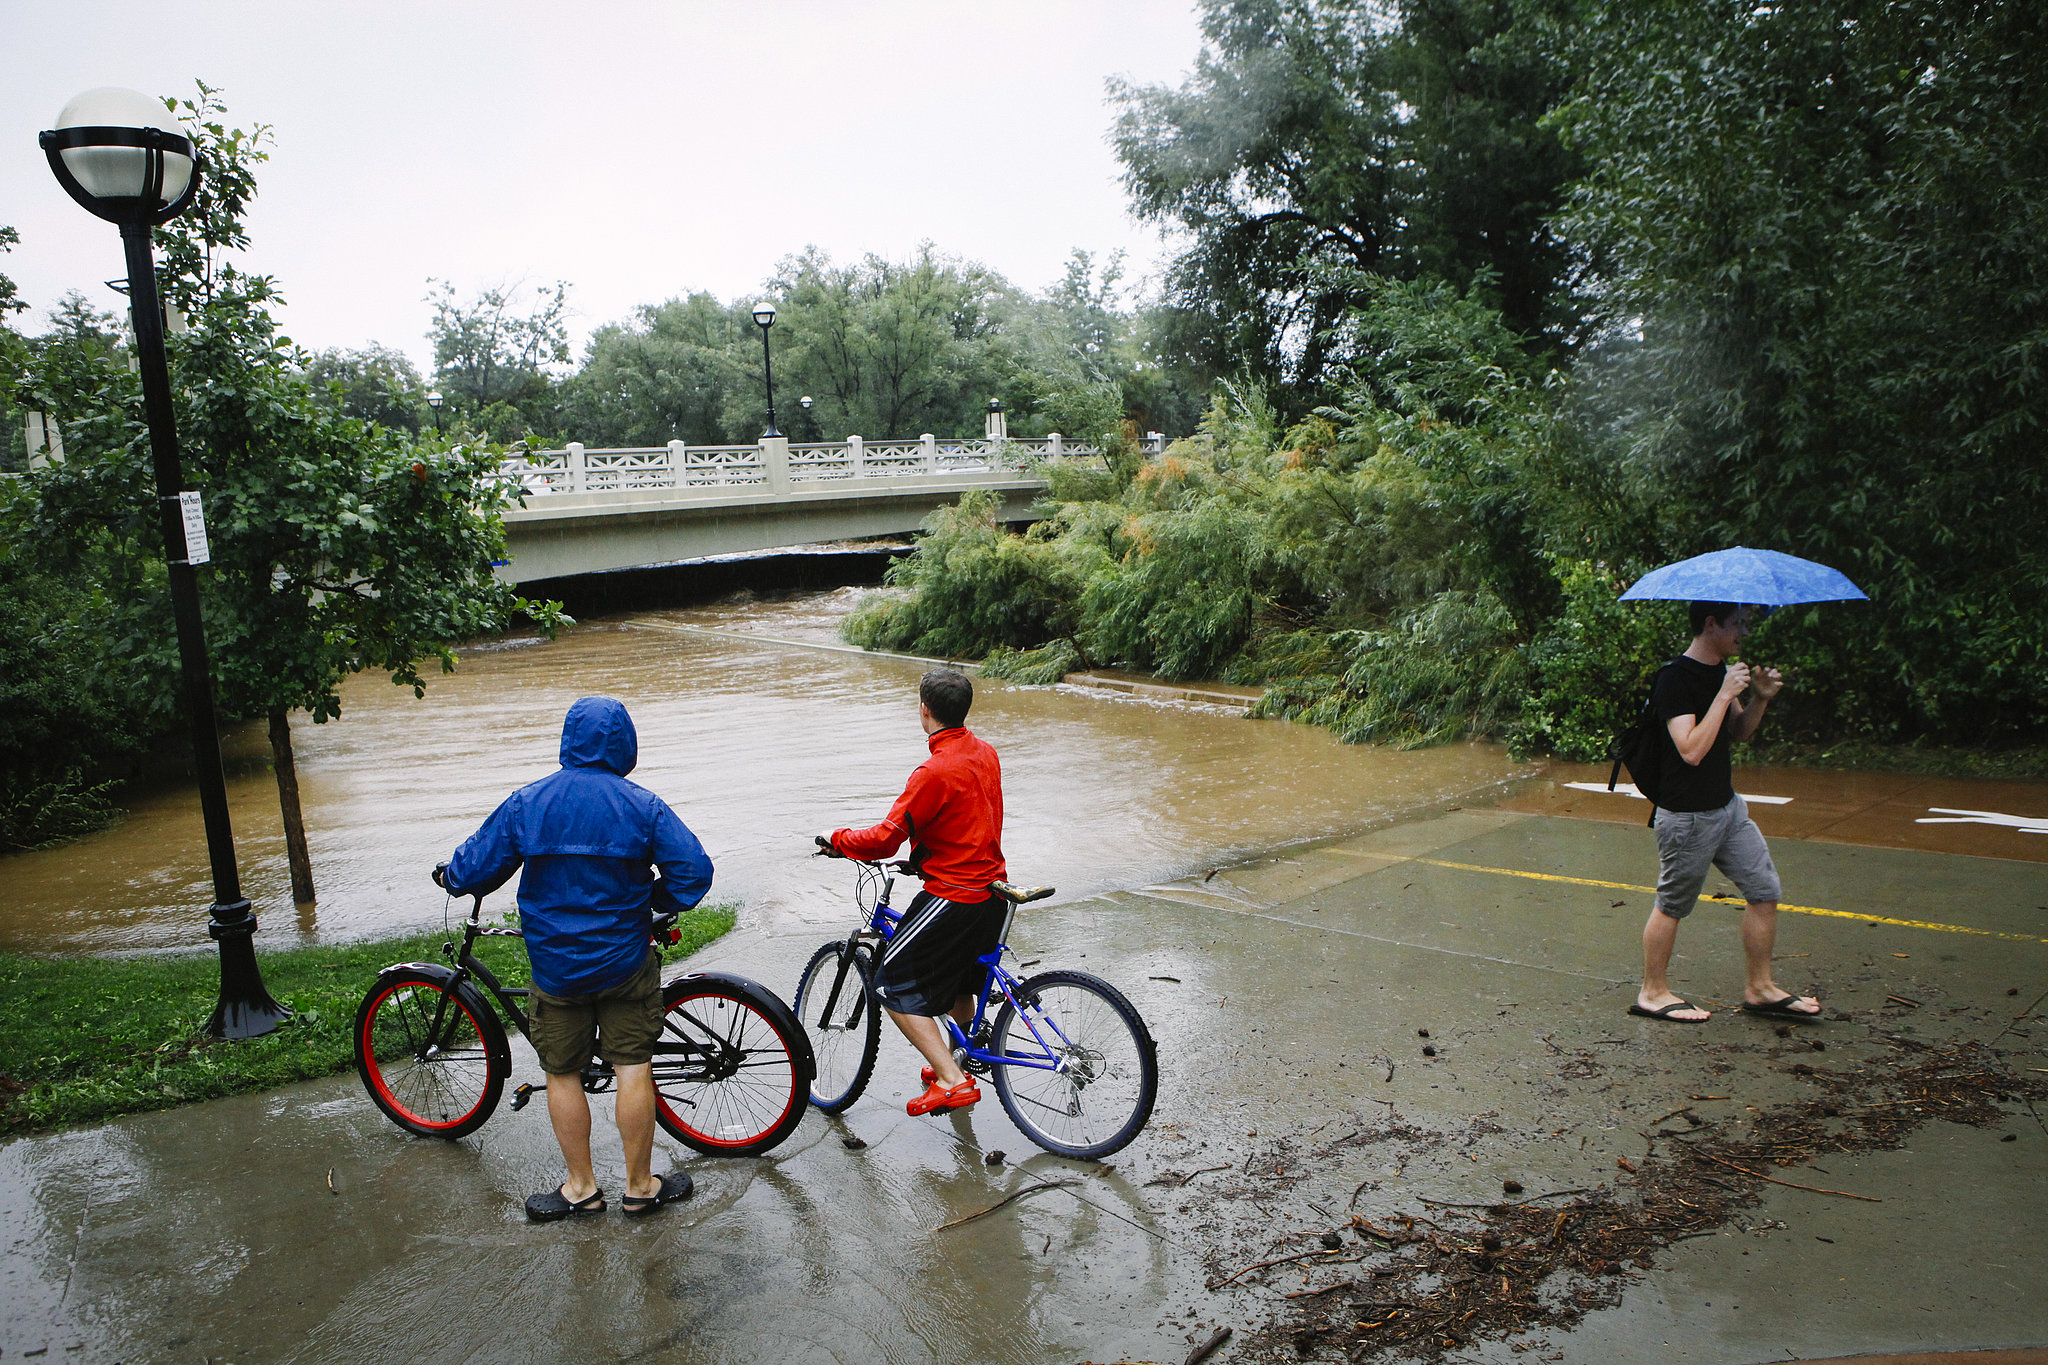 People checked out the overflowing waters of Boulder Creek as they passed by.